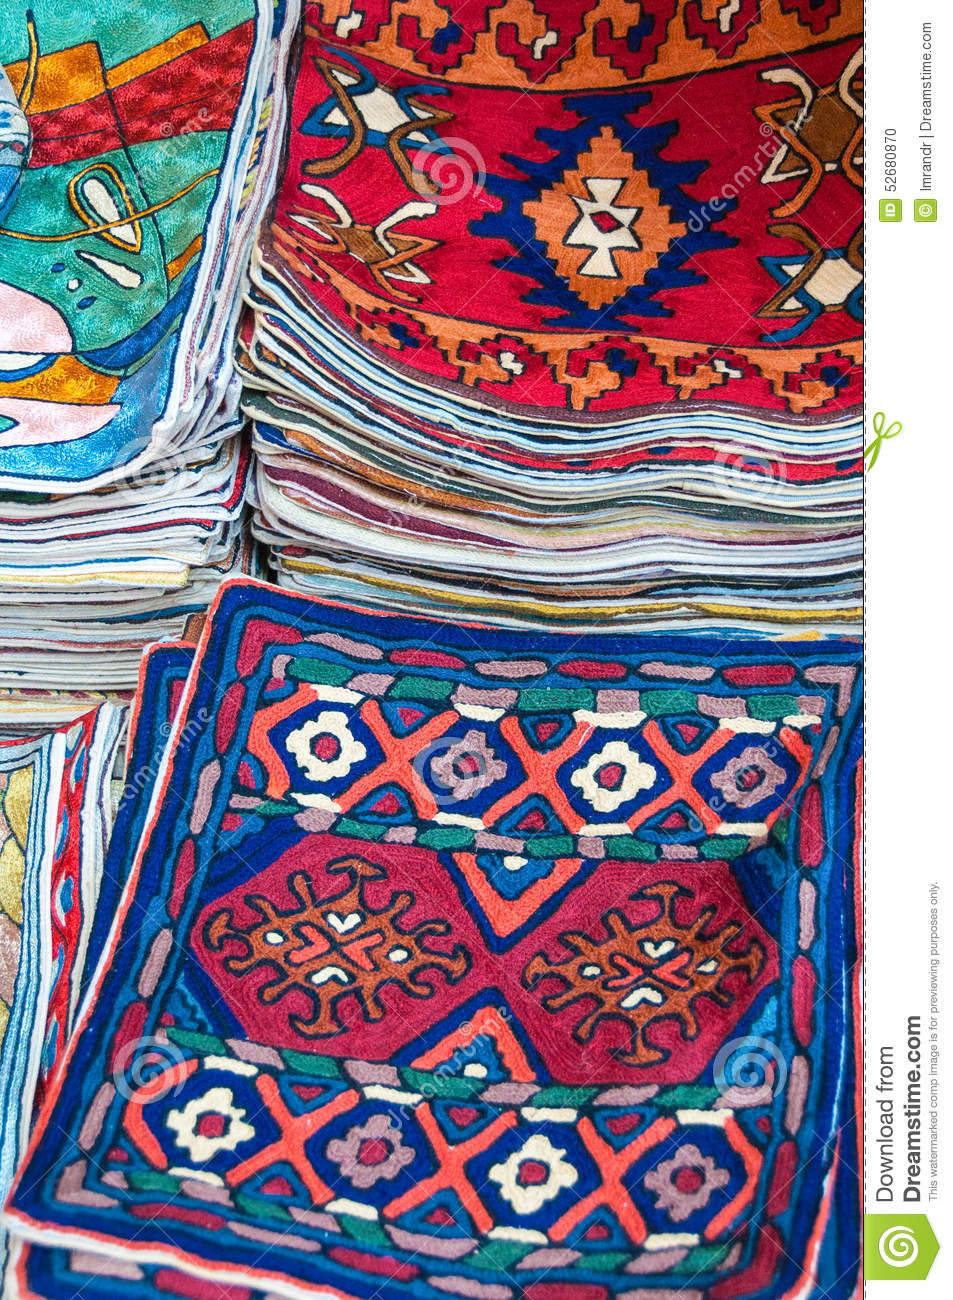 Colorful Cushion Covers On Sale In A Shop Muttrah Souk, In